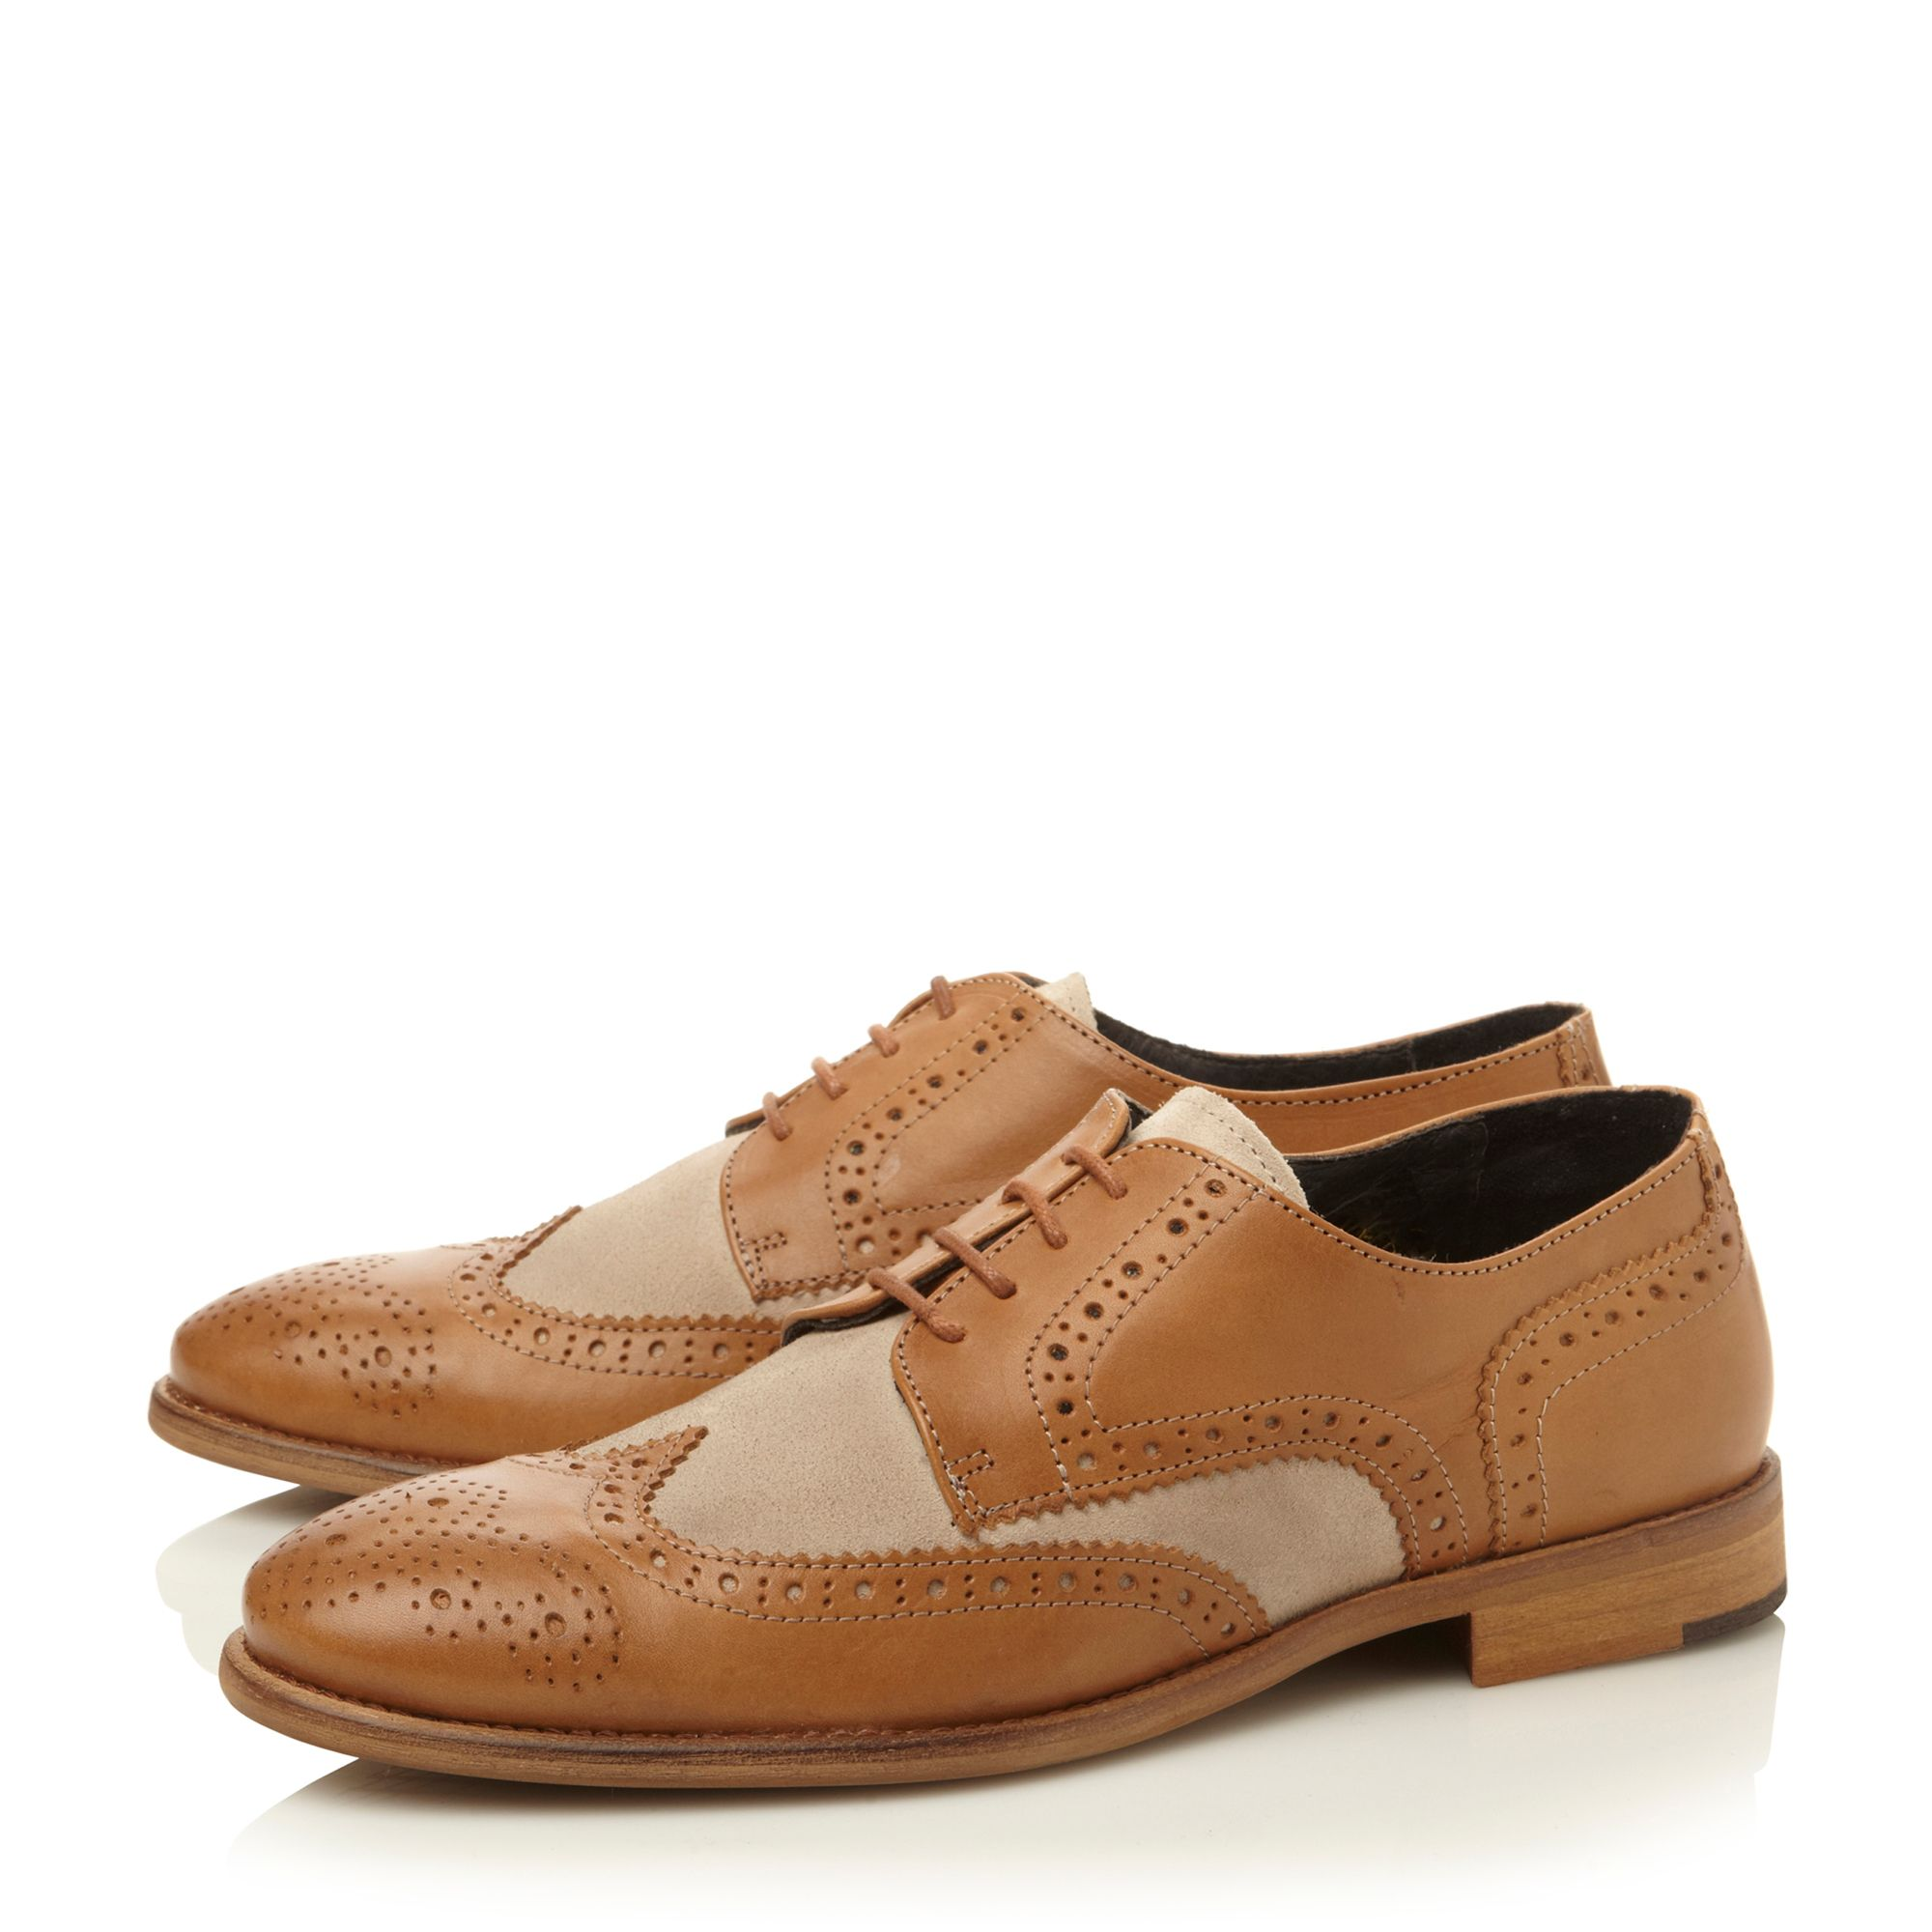 Aston 2 lace up suede and leather brogues